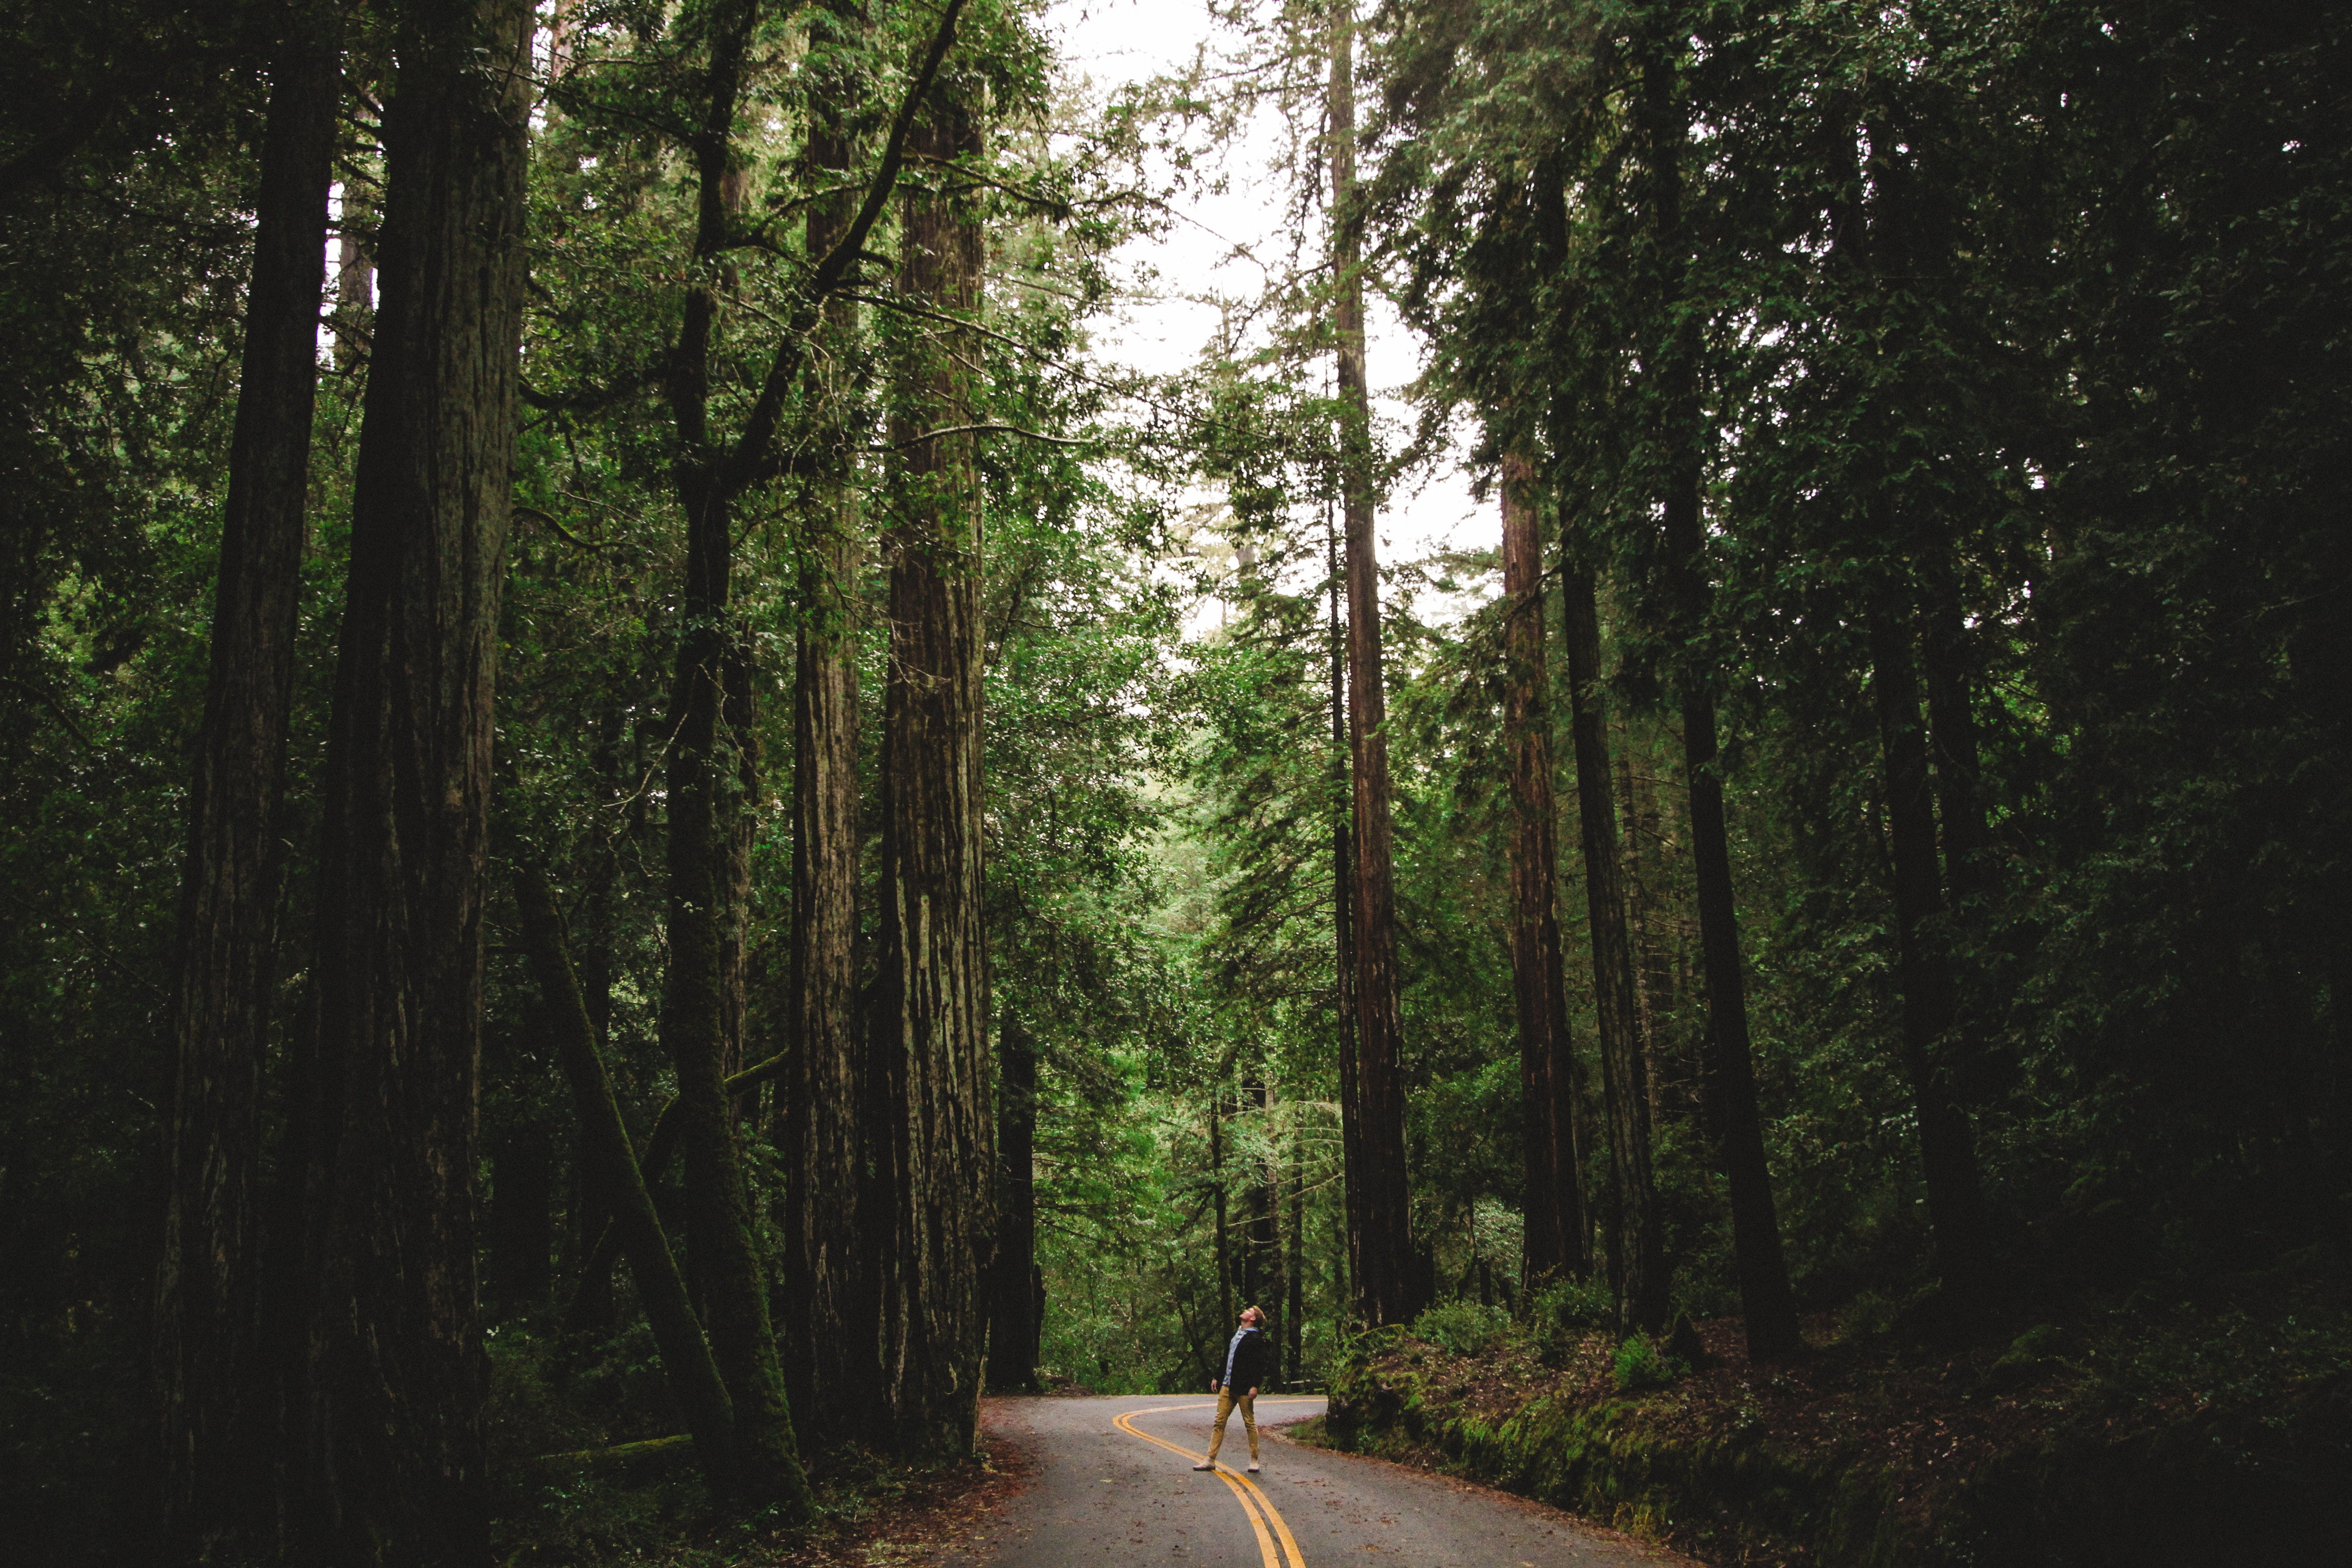 person standing on gray concrete road between tall trees during daytime photo